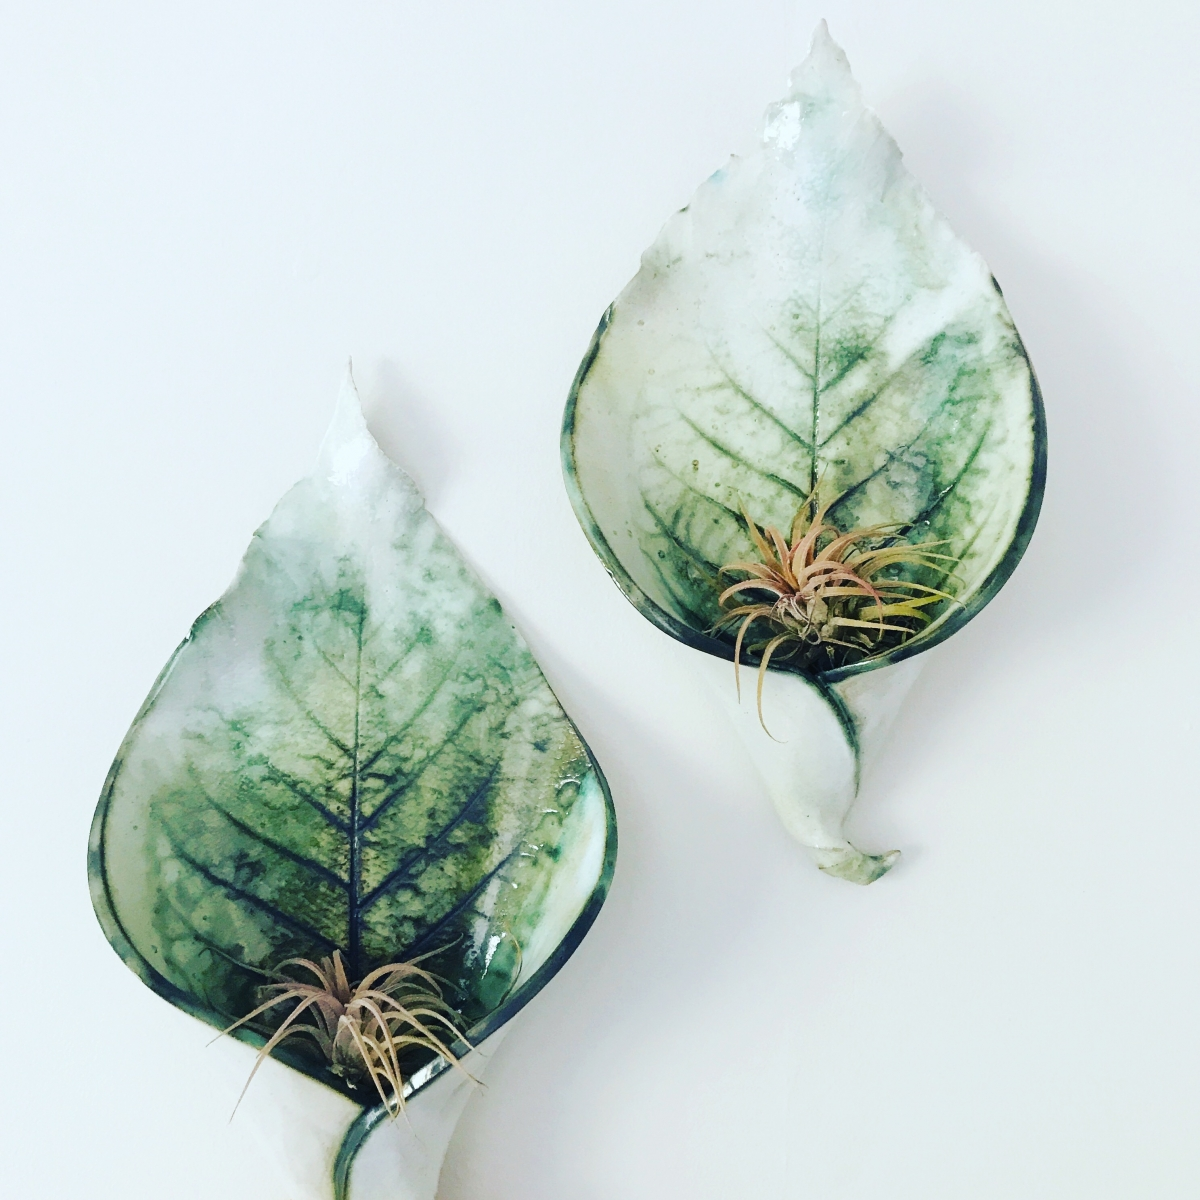 Wall Planters for Air Plants Calla Lily Design